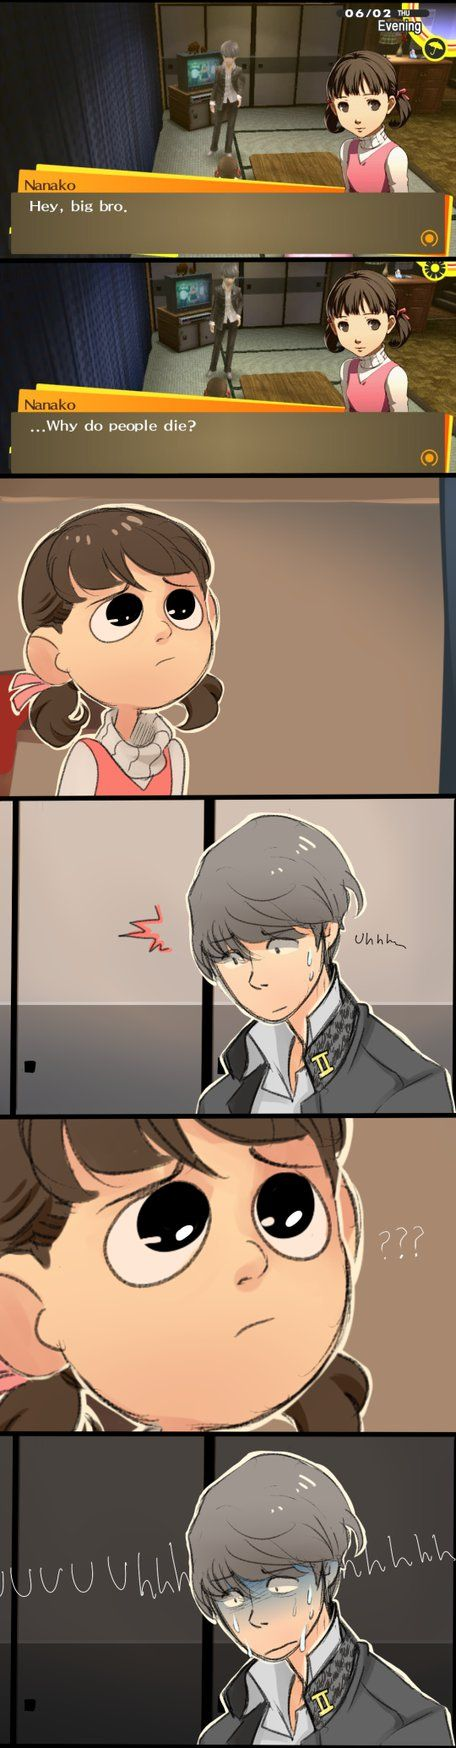 Not ready for questions like these  [PERSONA 4] by Ful-Fisk.deviantart.com on @DeviantArt